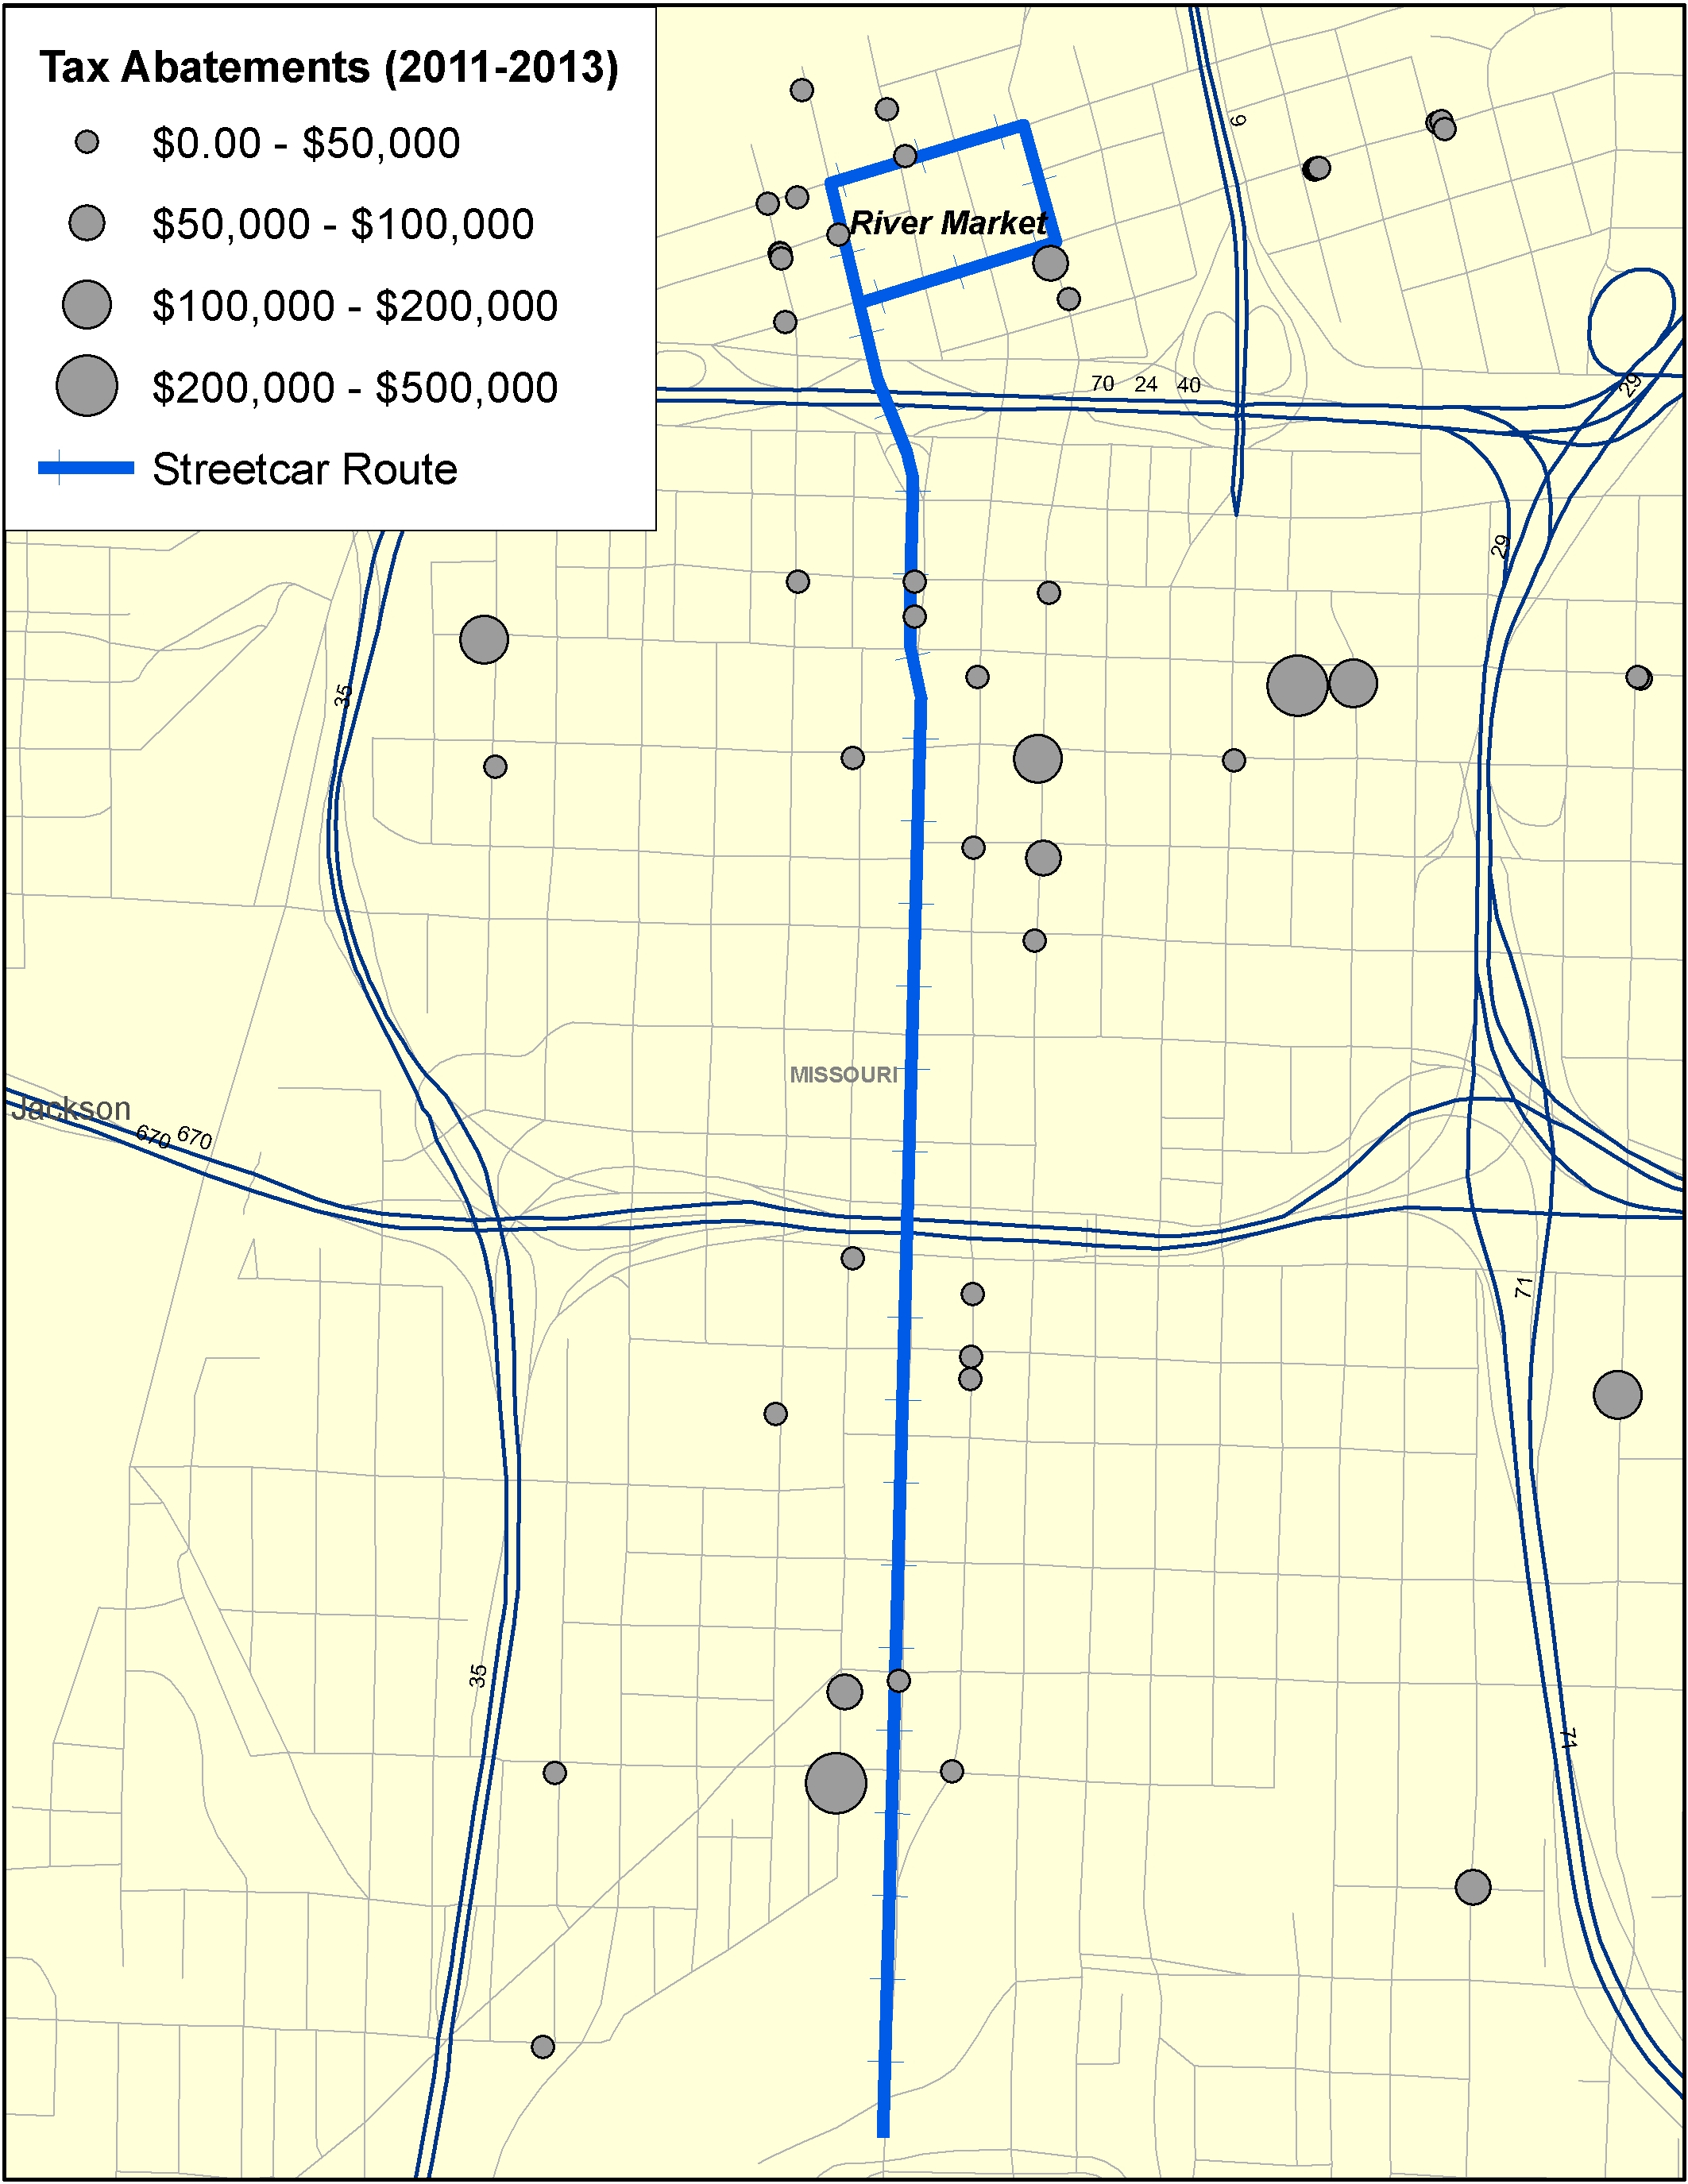 Map Series: VIII. The Kansas City Streetcar and Tax Abatements ... on missouri state road map, worlds of fun map, hd map, hebron ne map, earth city missouri map, kl map, na map, compromise of 1820 map, paul map, great plains usa map, de map,